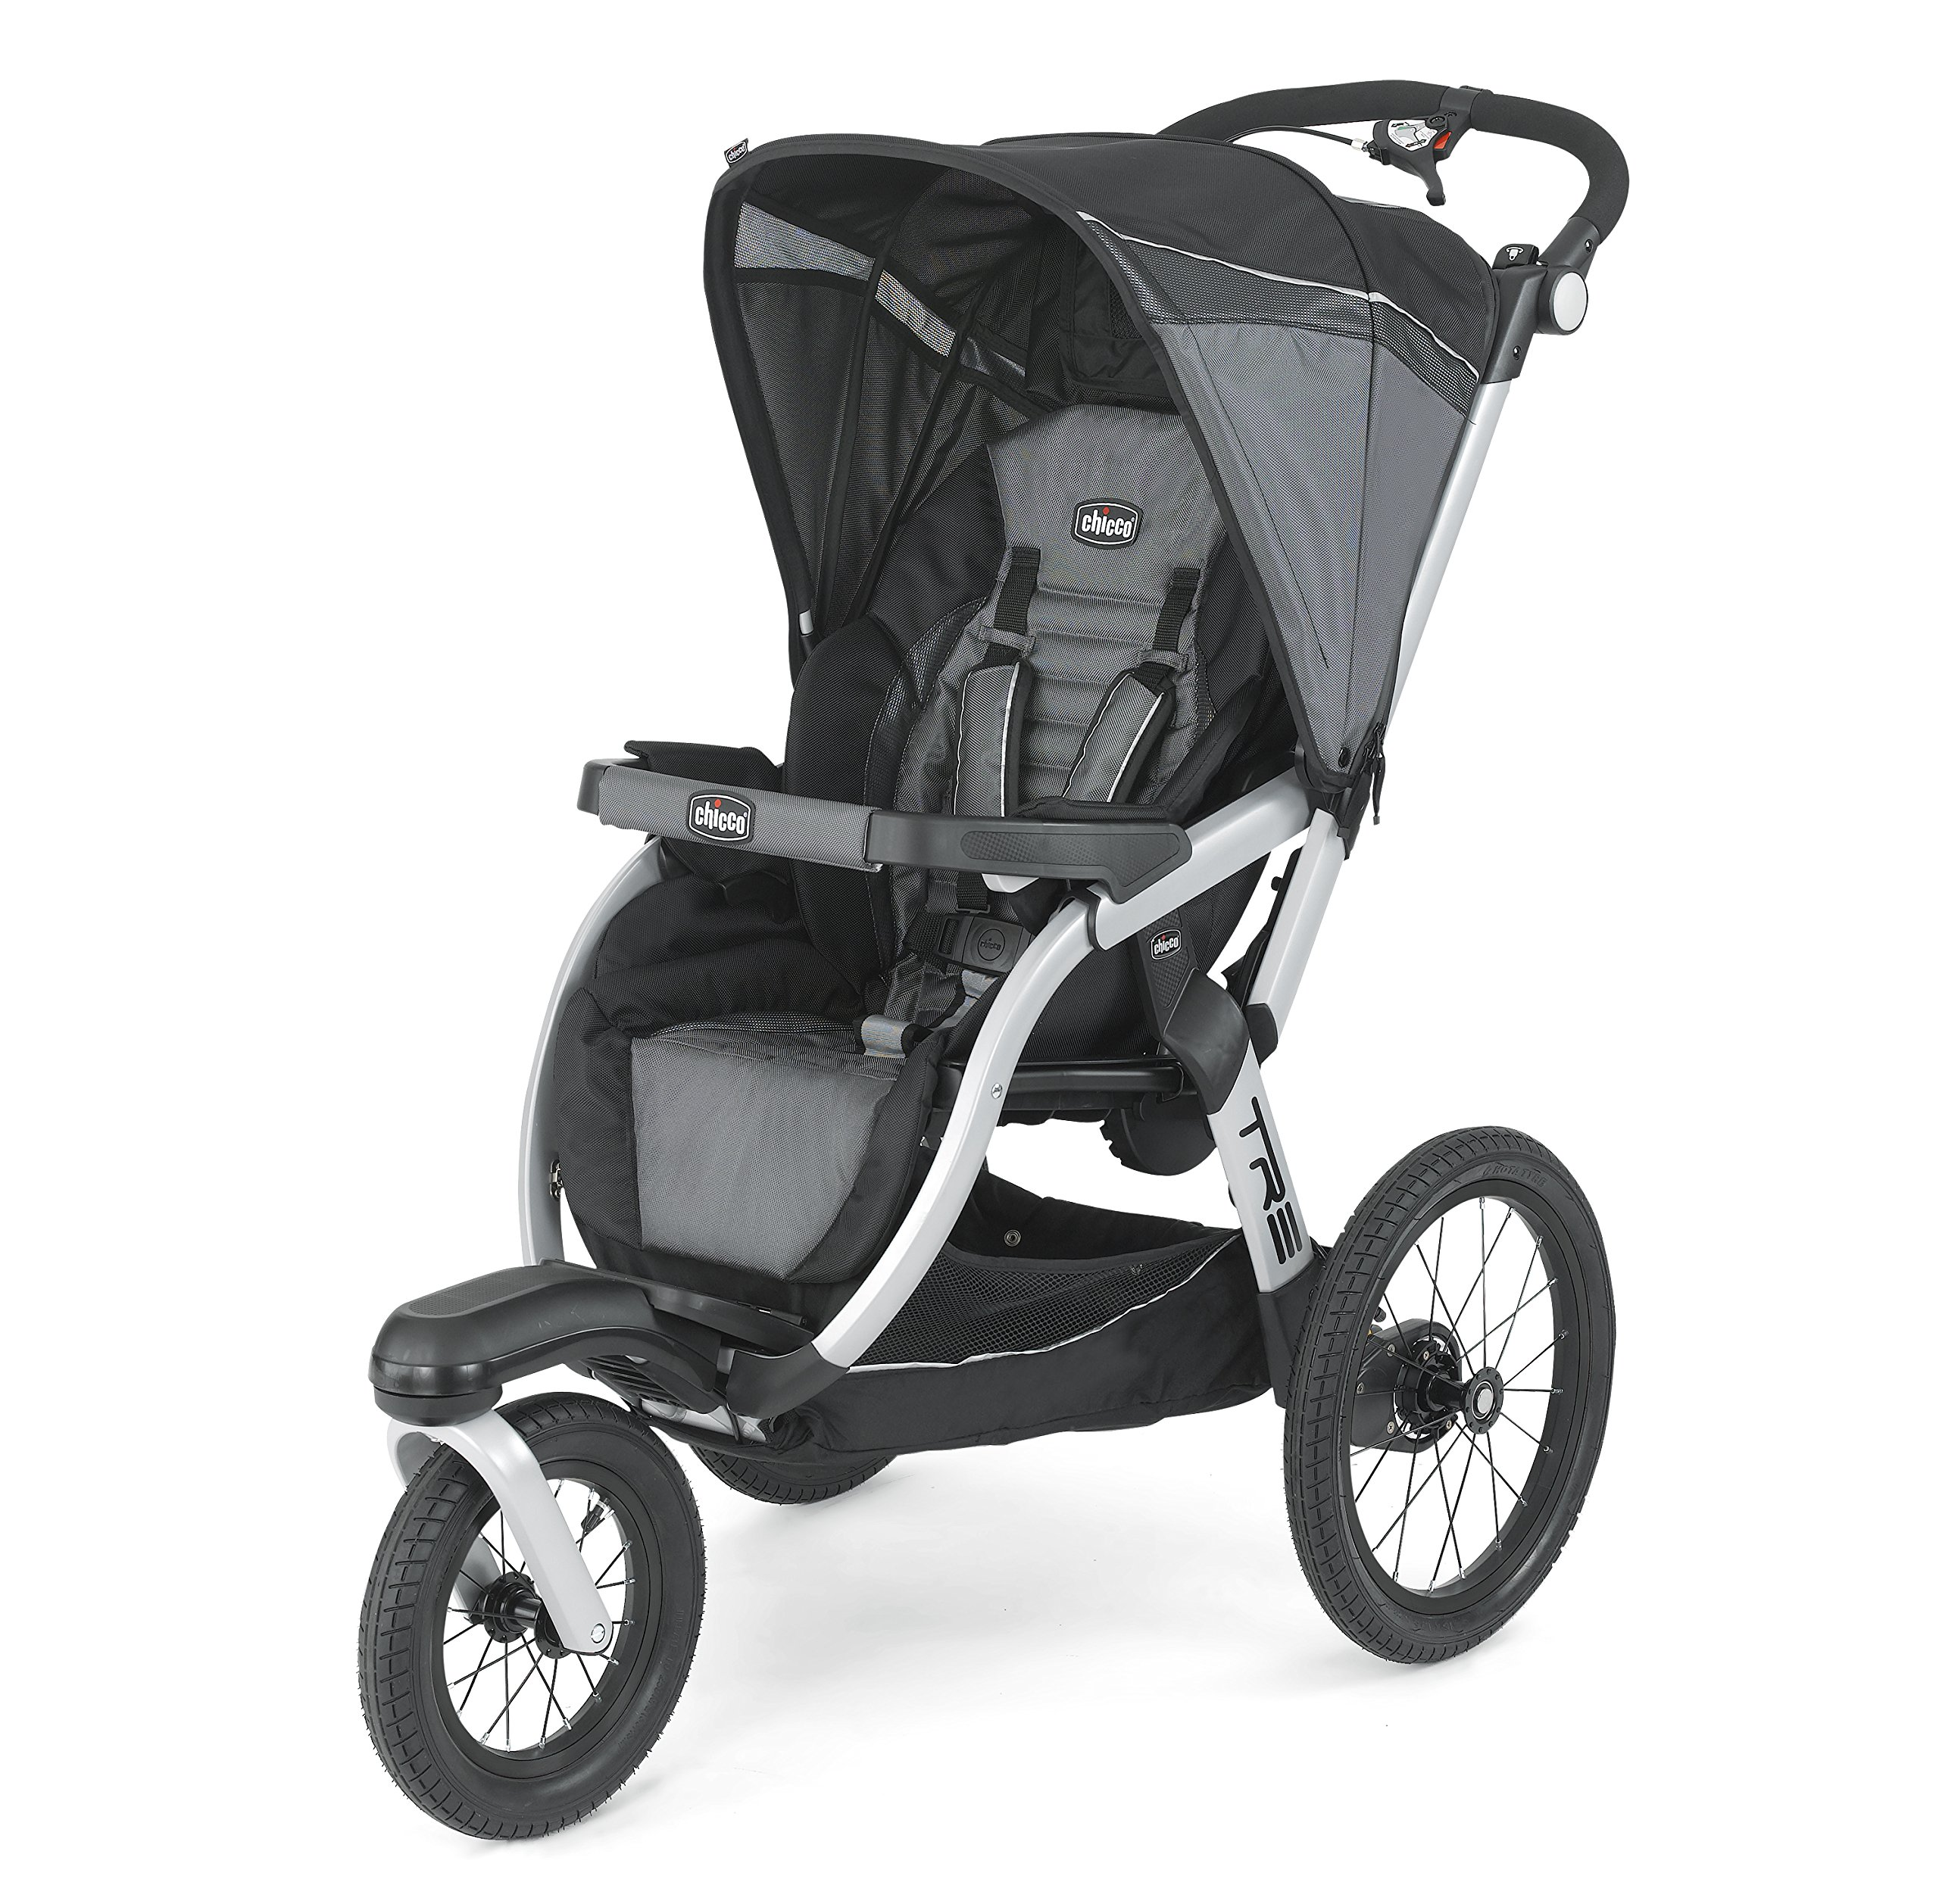 Chicco TRE Jogging Stroller - Titan by Chicco (Image #1)